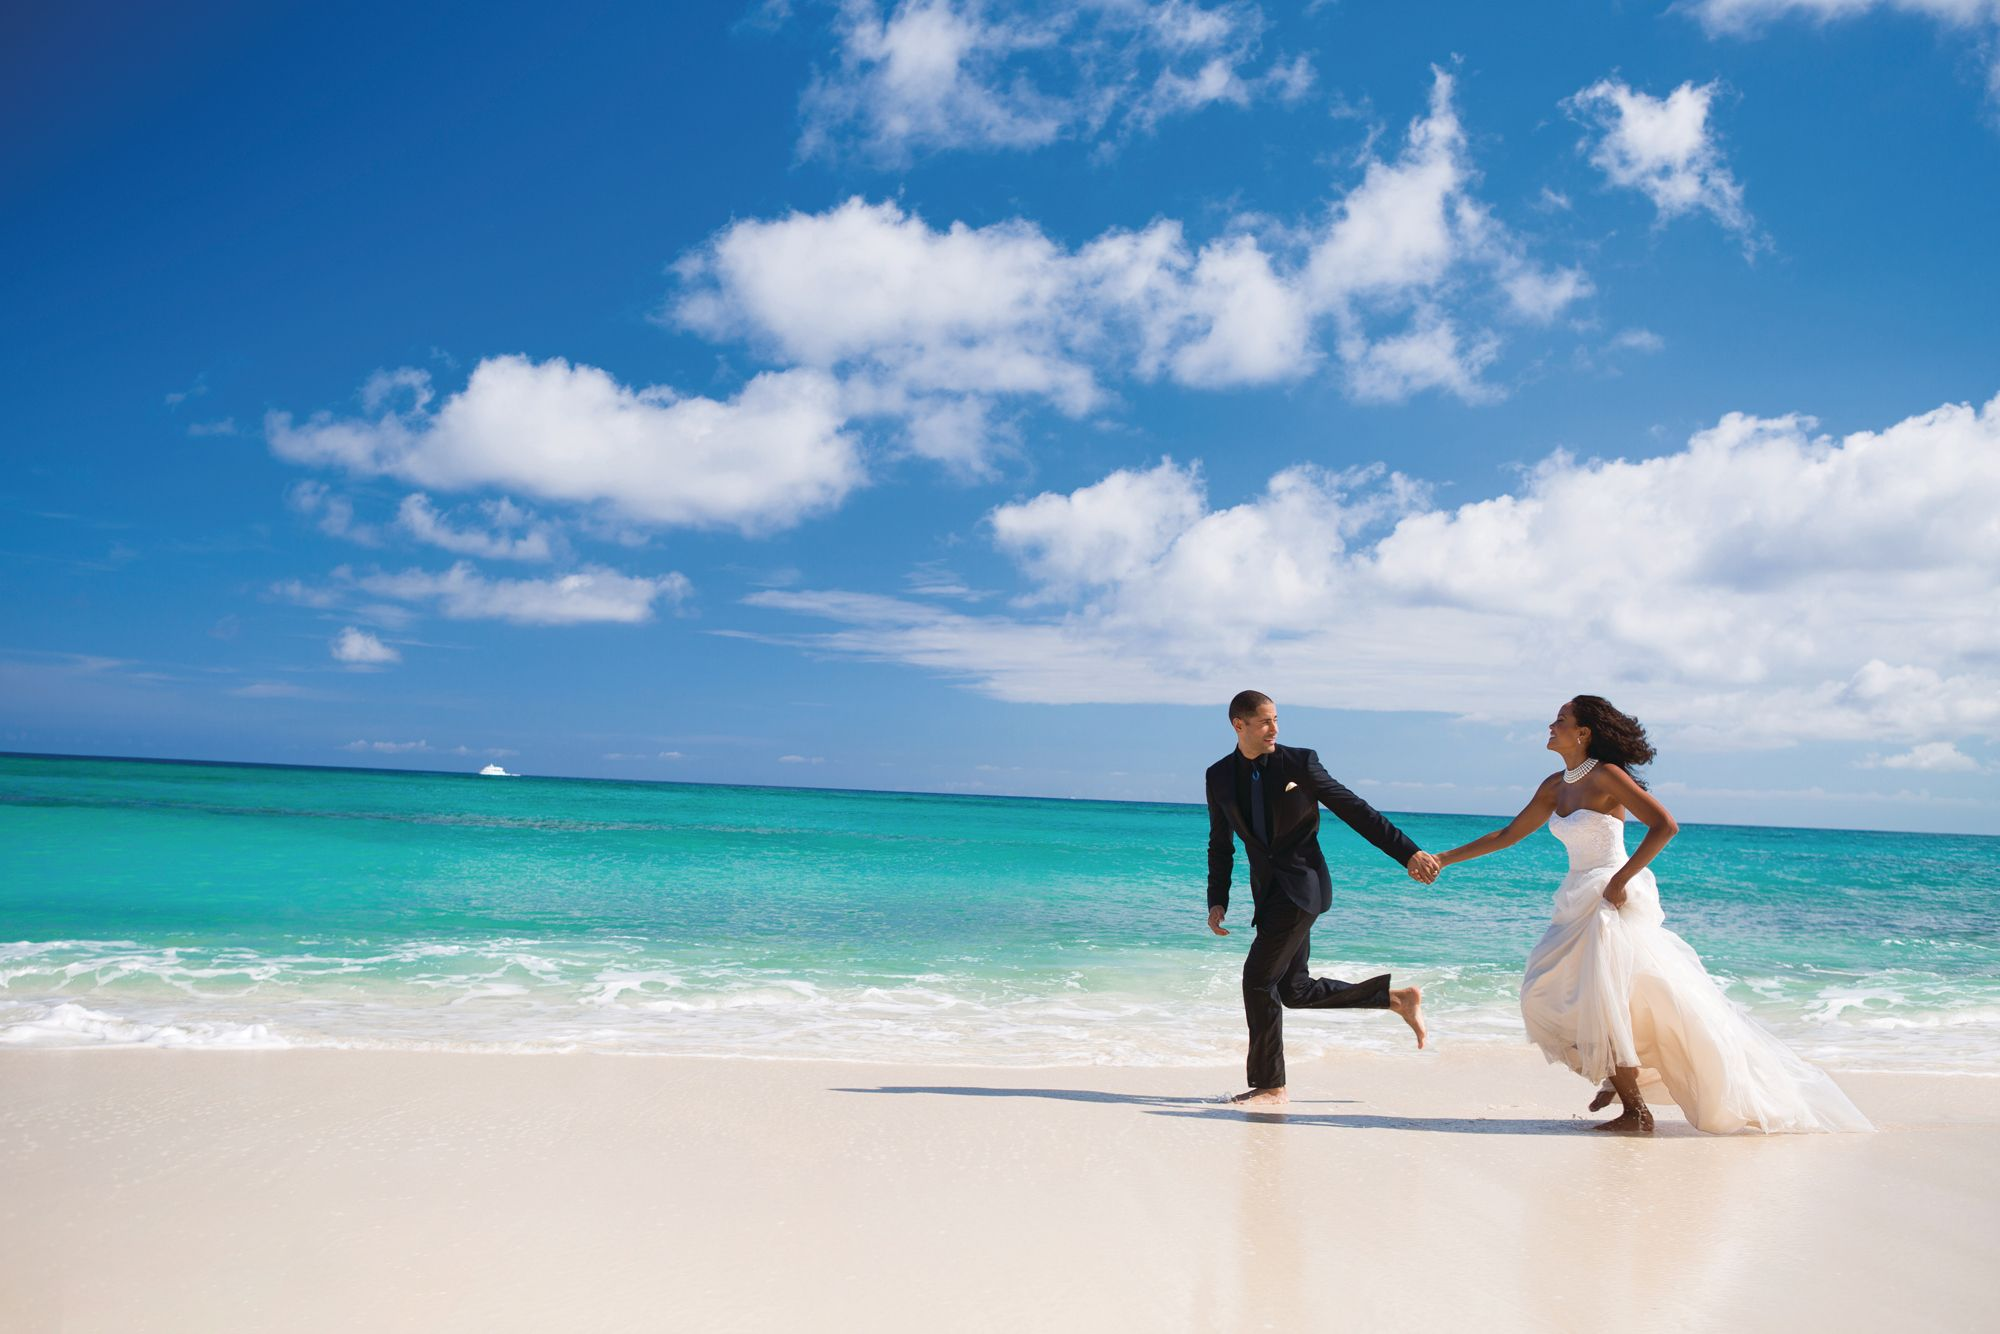 Sandals Royal Bahamian Wedding